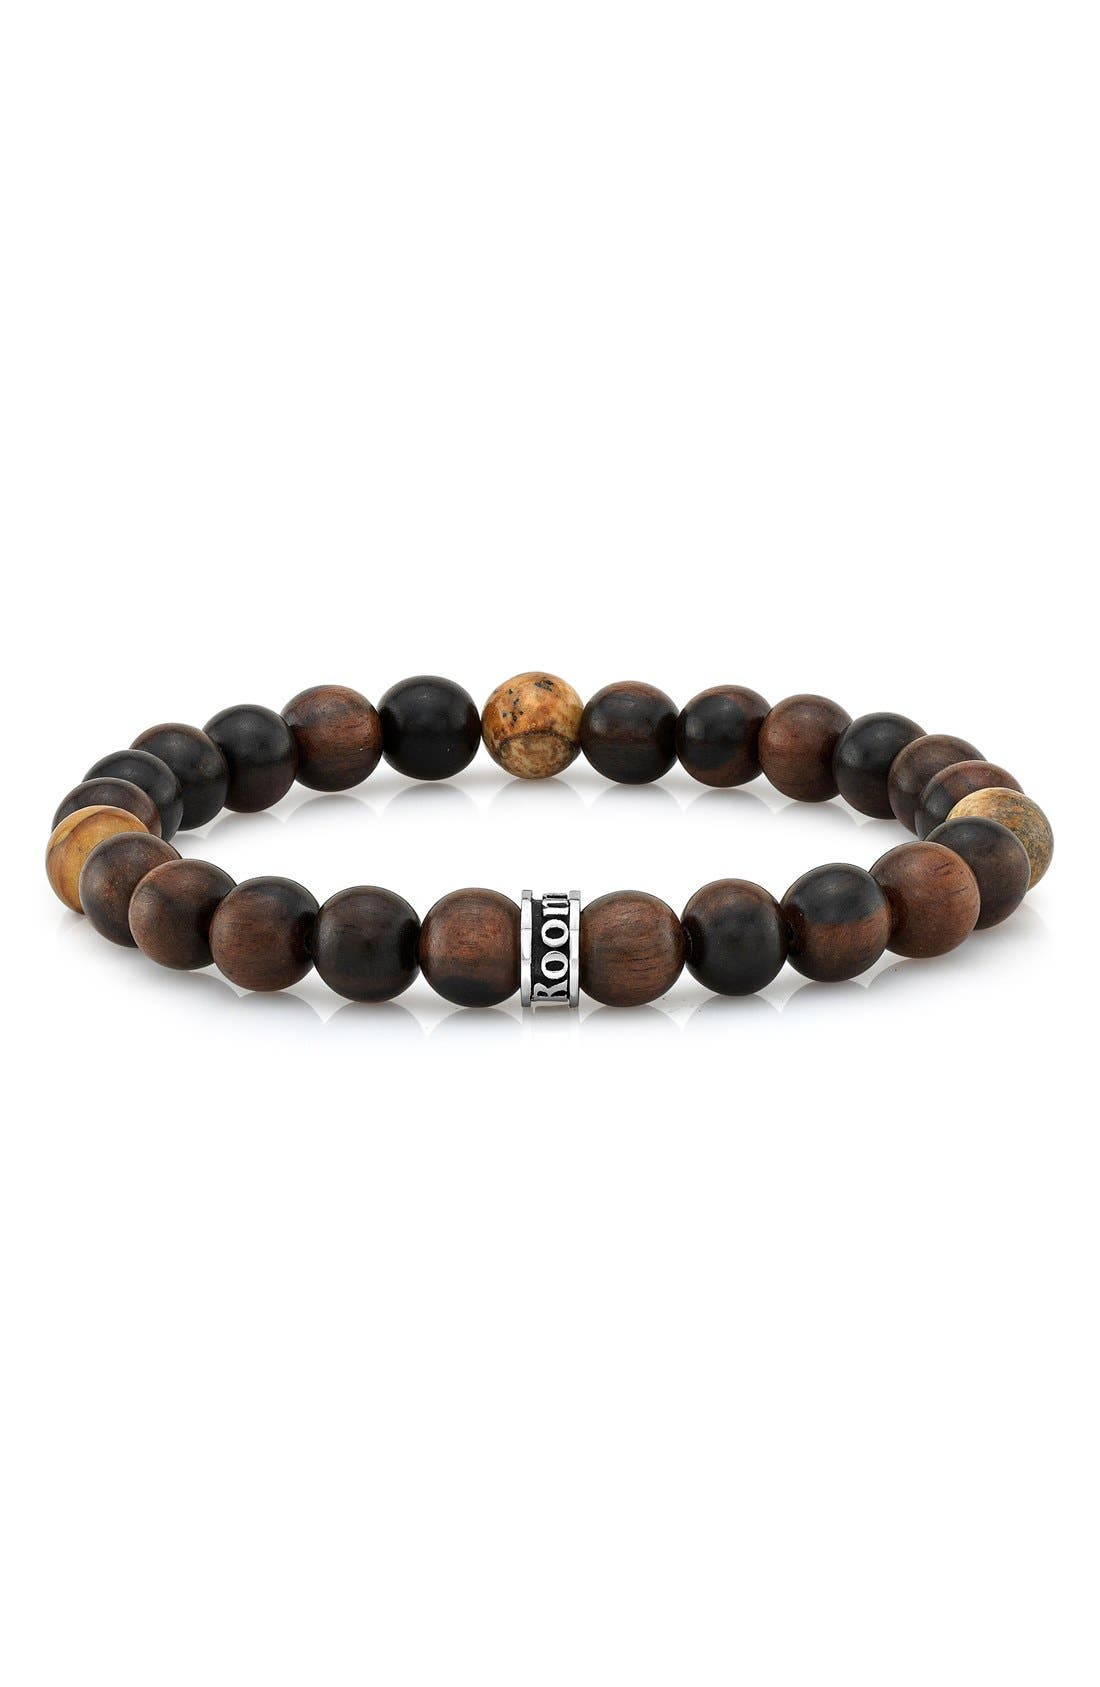 ROOM101 Wood & Agate Bead Stretch Bracelet